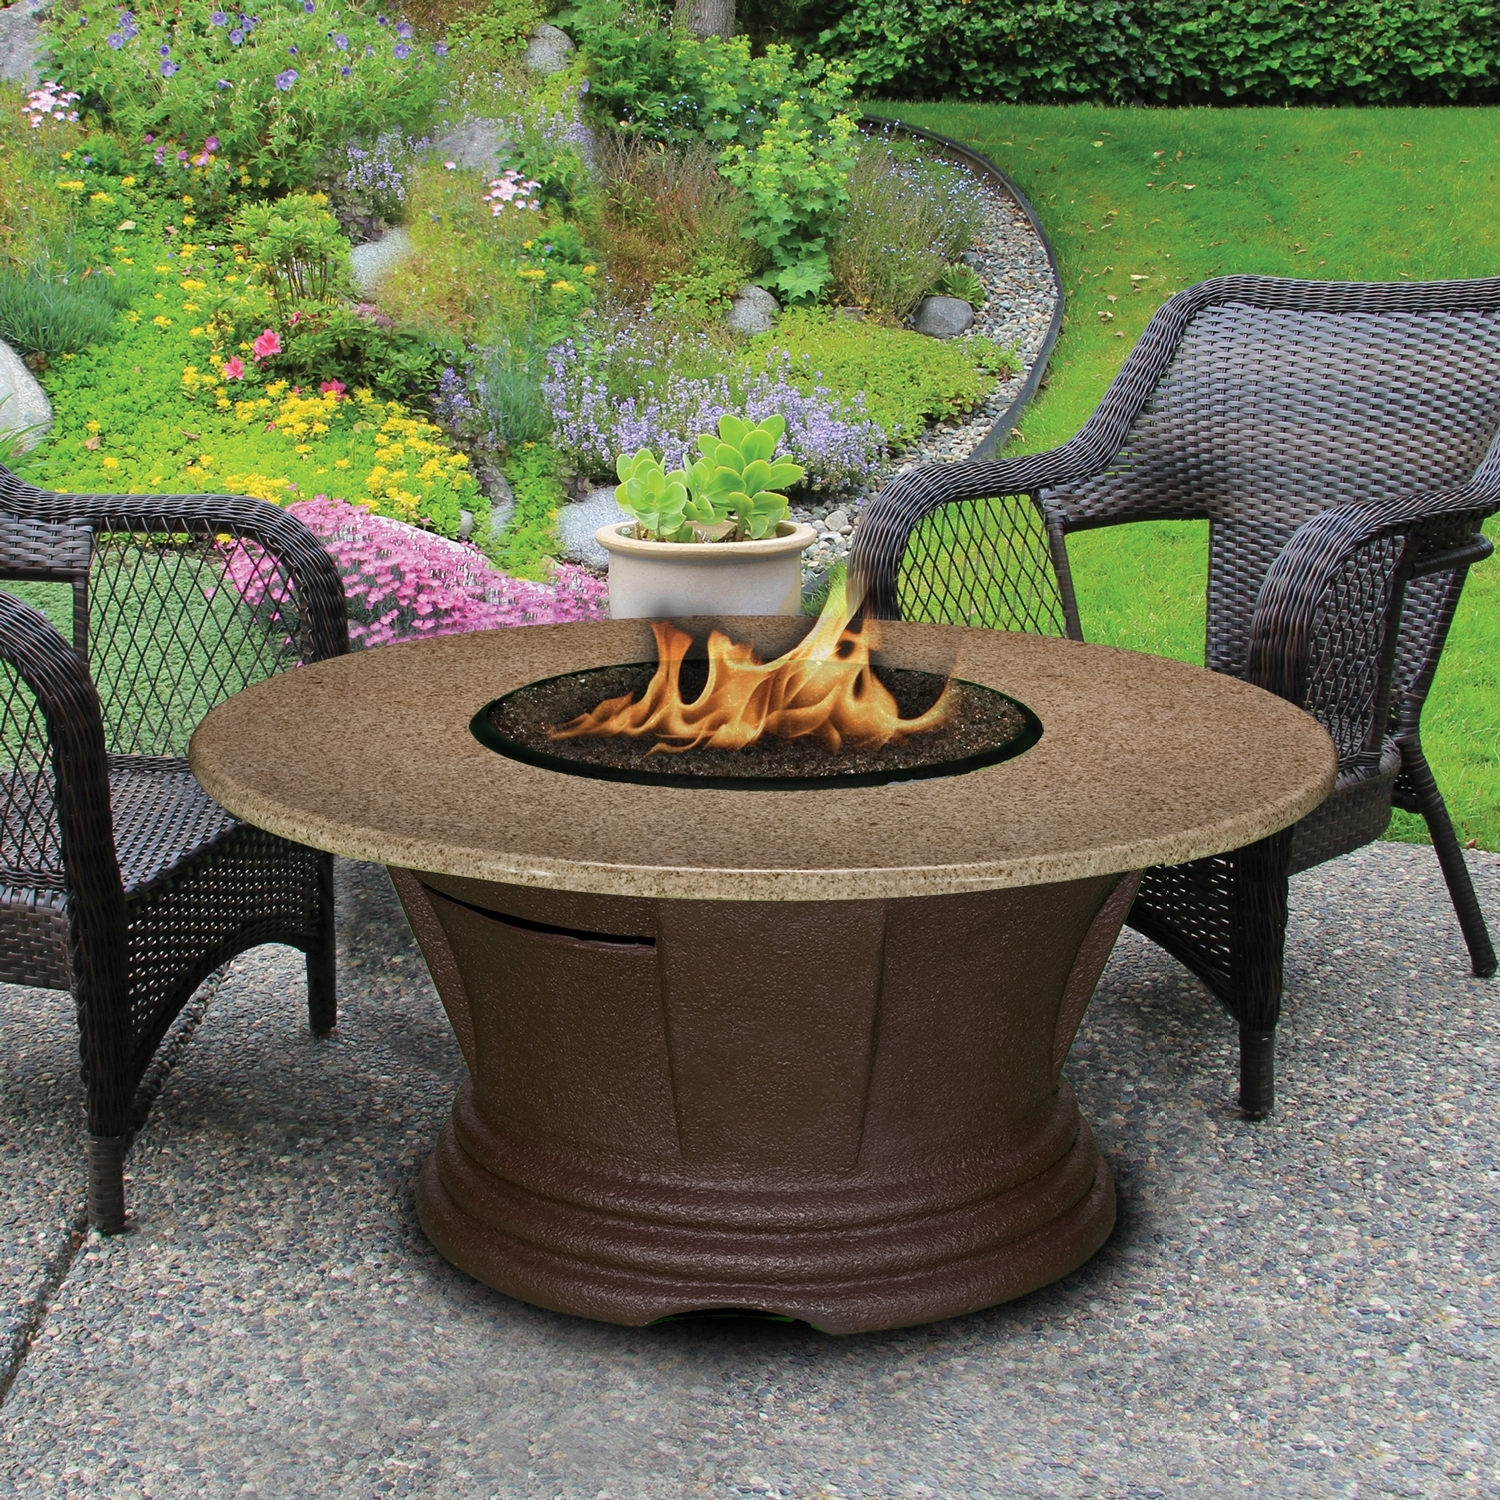 Learn About Fireplaces Chimineas Fire Pits Within Outdoor Fireplace Glass Rocks Be Warm All Year Round With Outdoor Fireplace Glass Rocks